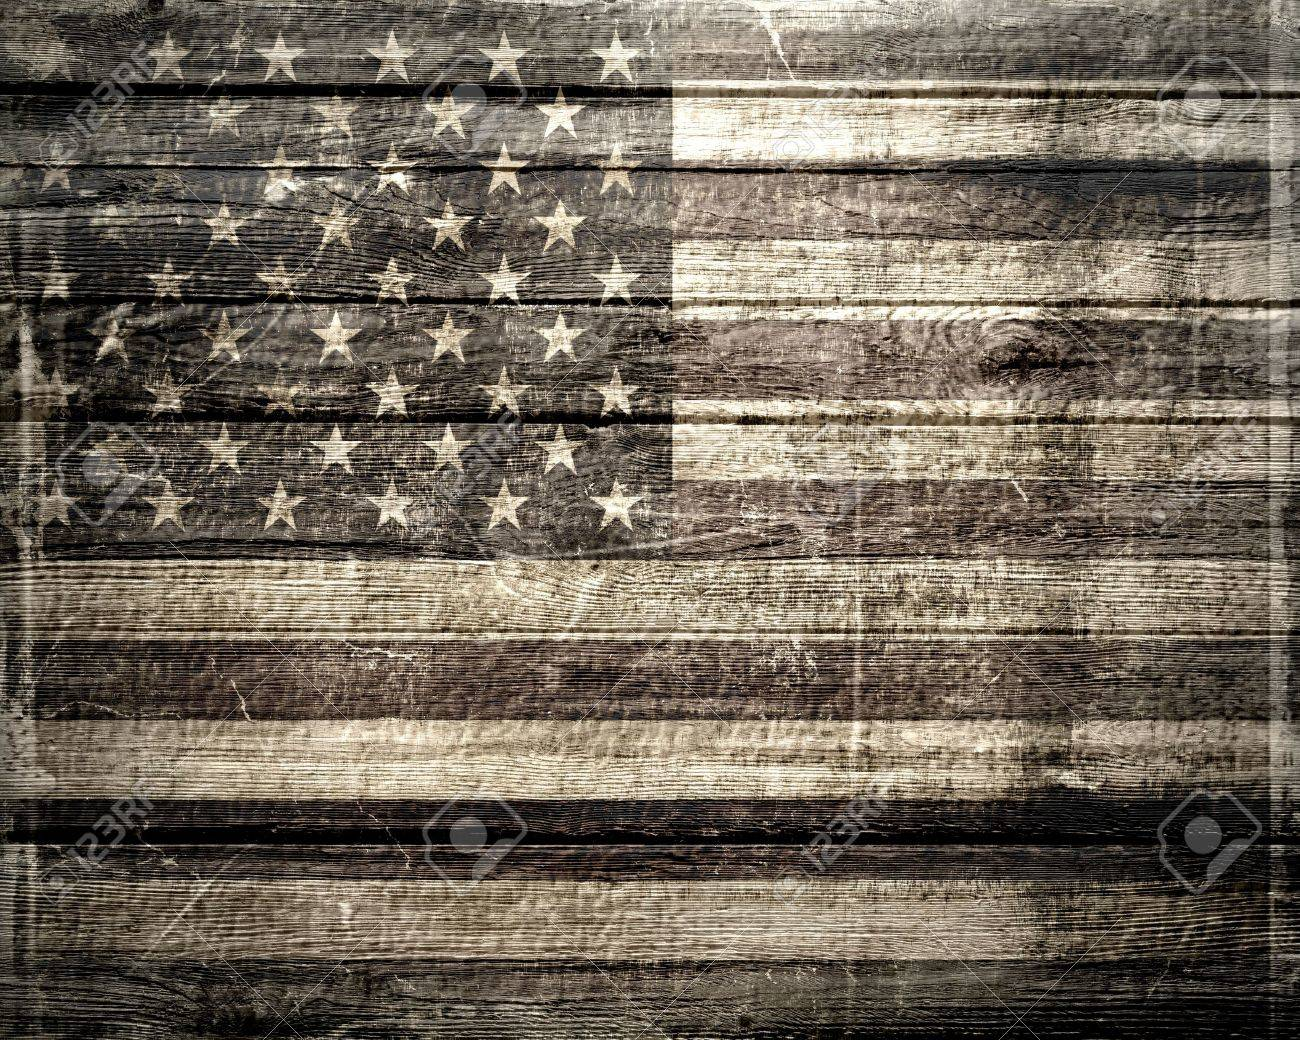 9c96b554e9 American Flag On A Wheatered Wooden Vintage Background Stock Photo -  28116491